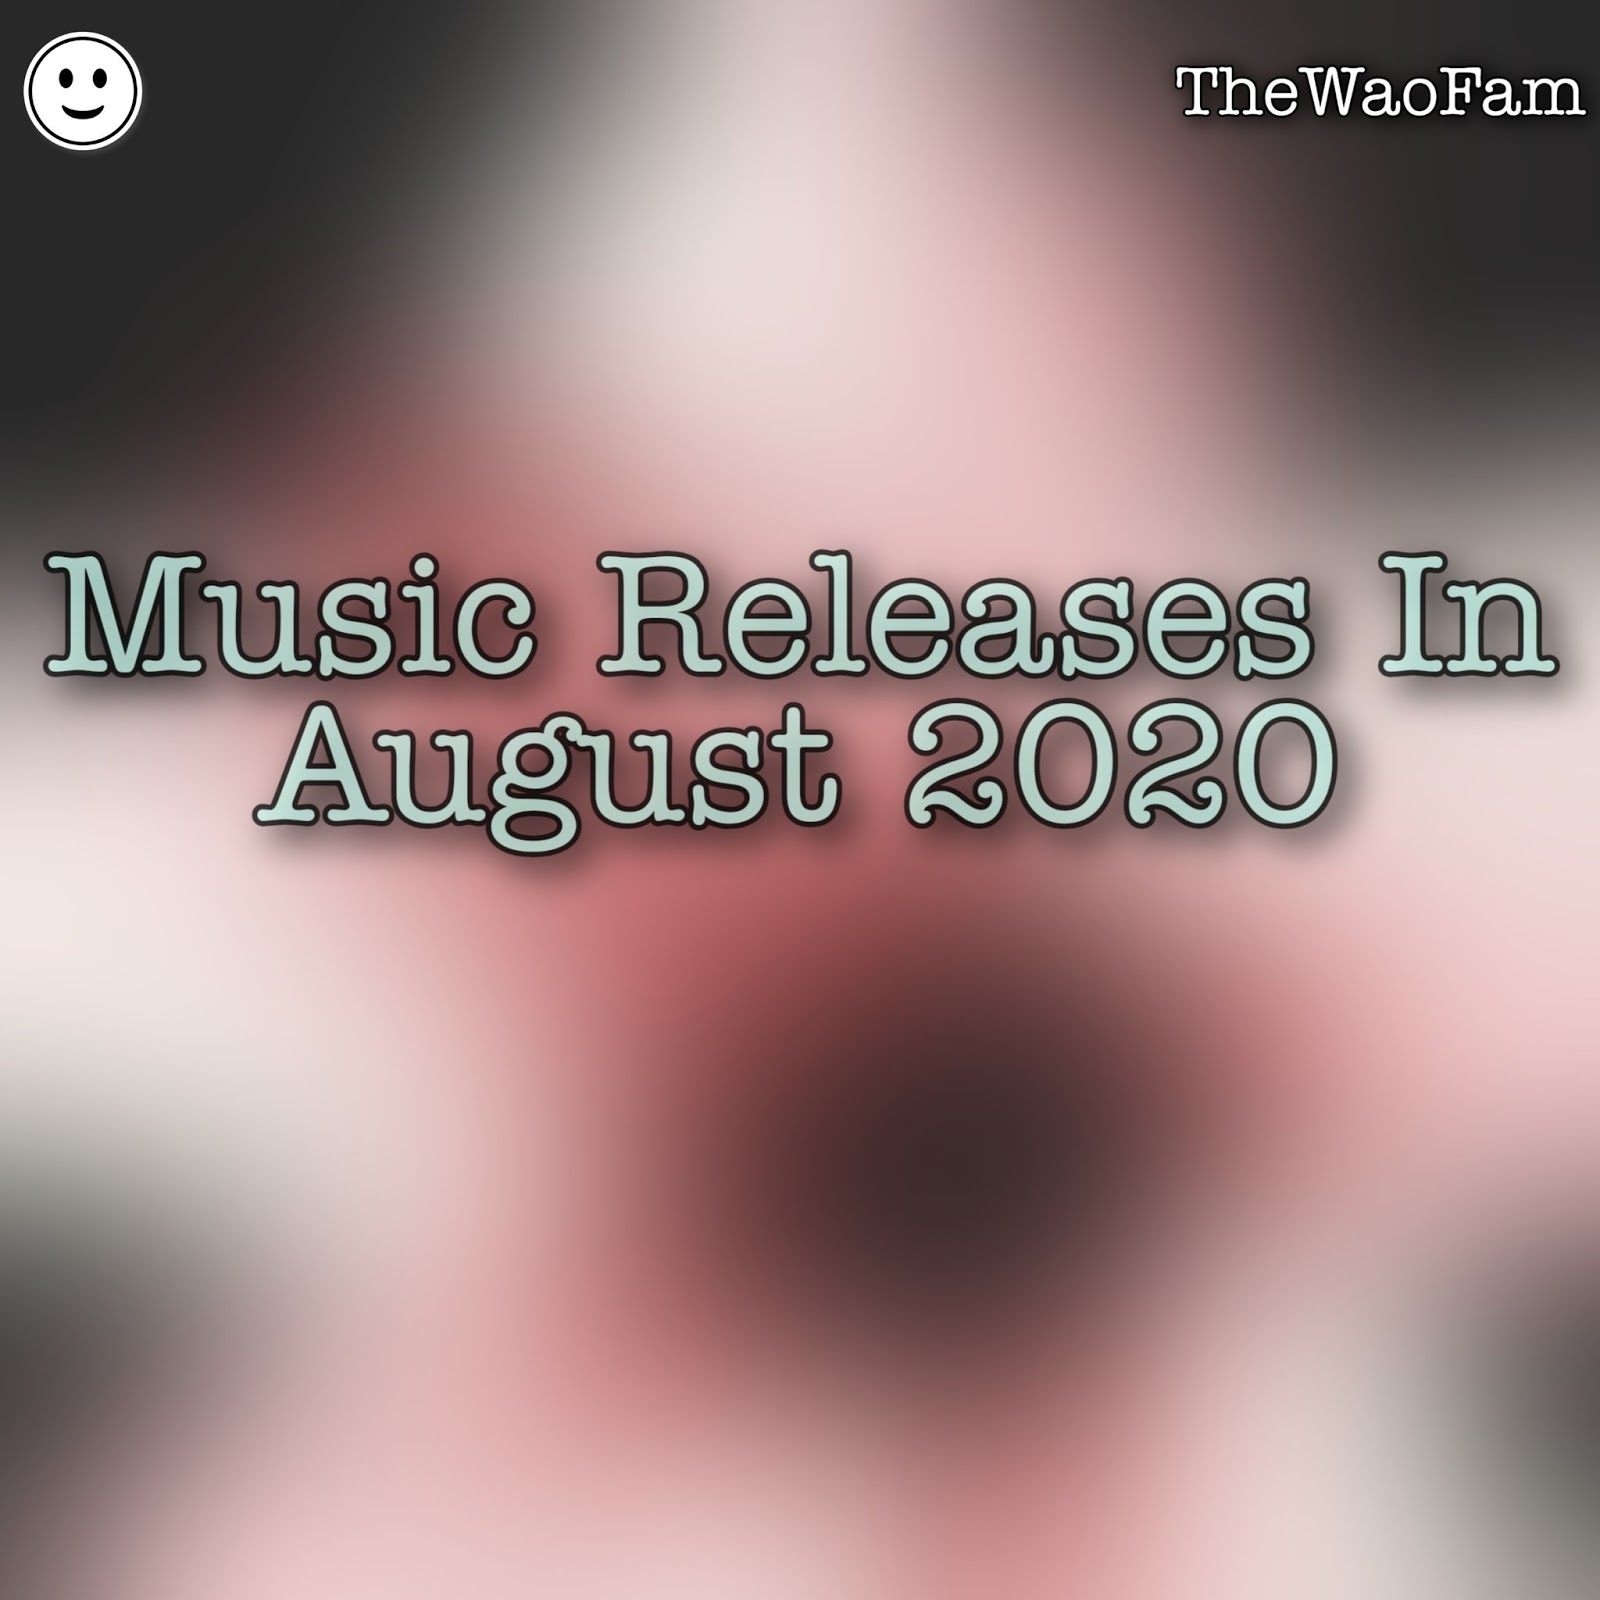 Music Releases In August 2020